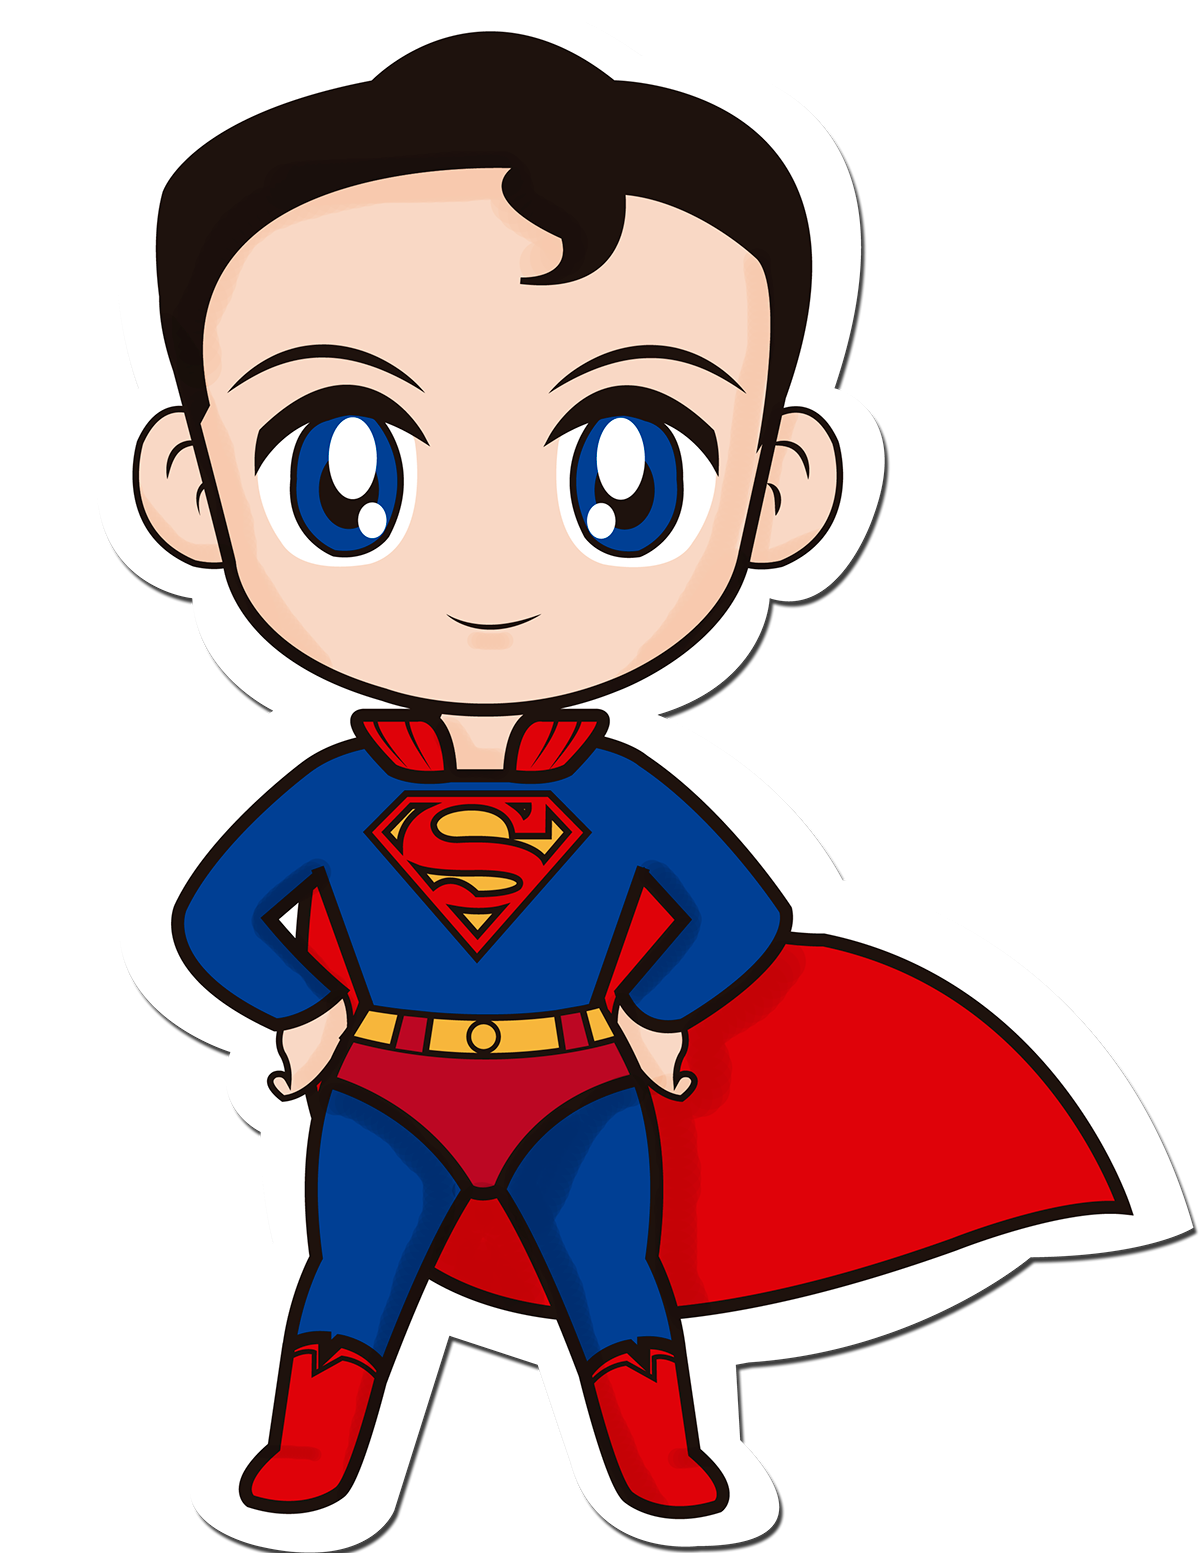 baby superman drawings www imgkid com the image kid Superhero Silhouette Clip Art Superhero Clip Art Black and White